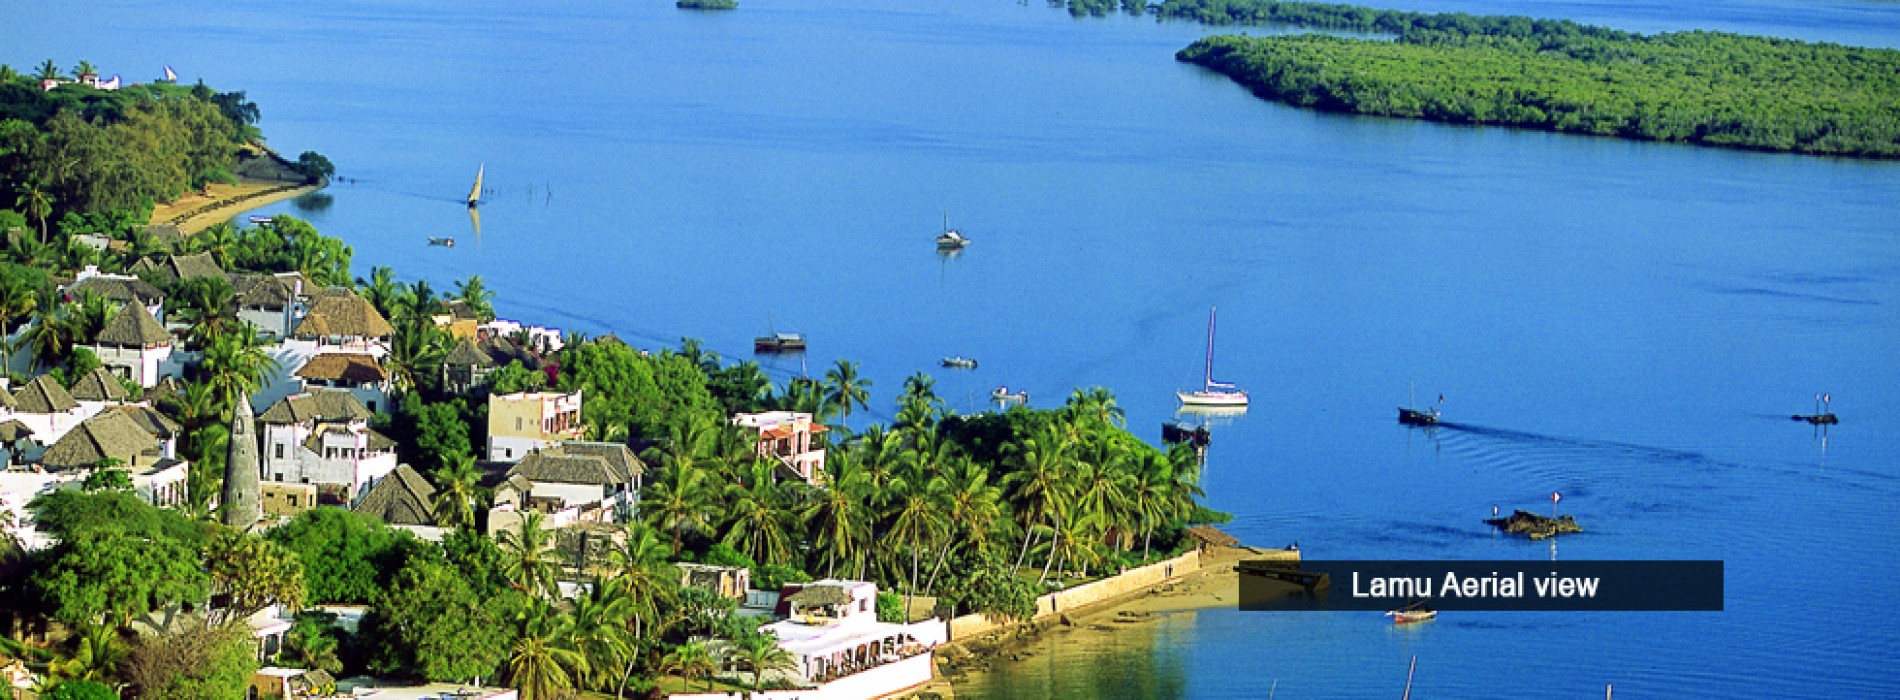 6 reasons why Lamu should be on your bucket list for 2016